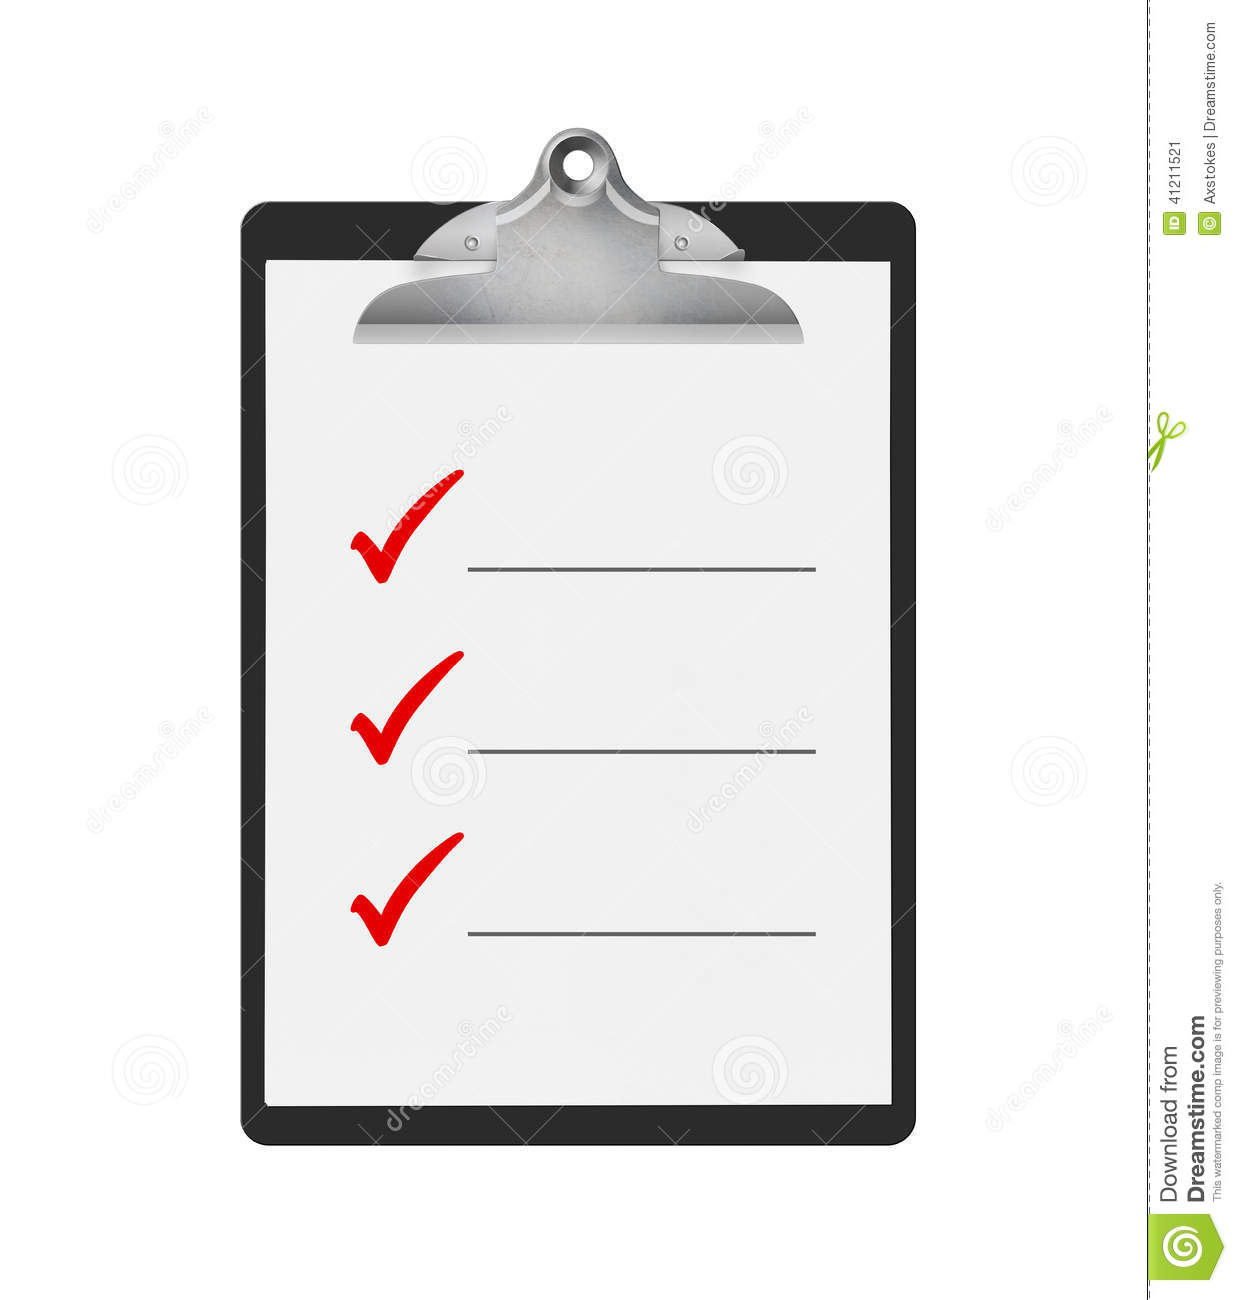 things to do checklist stock illustration illustration of office